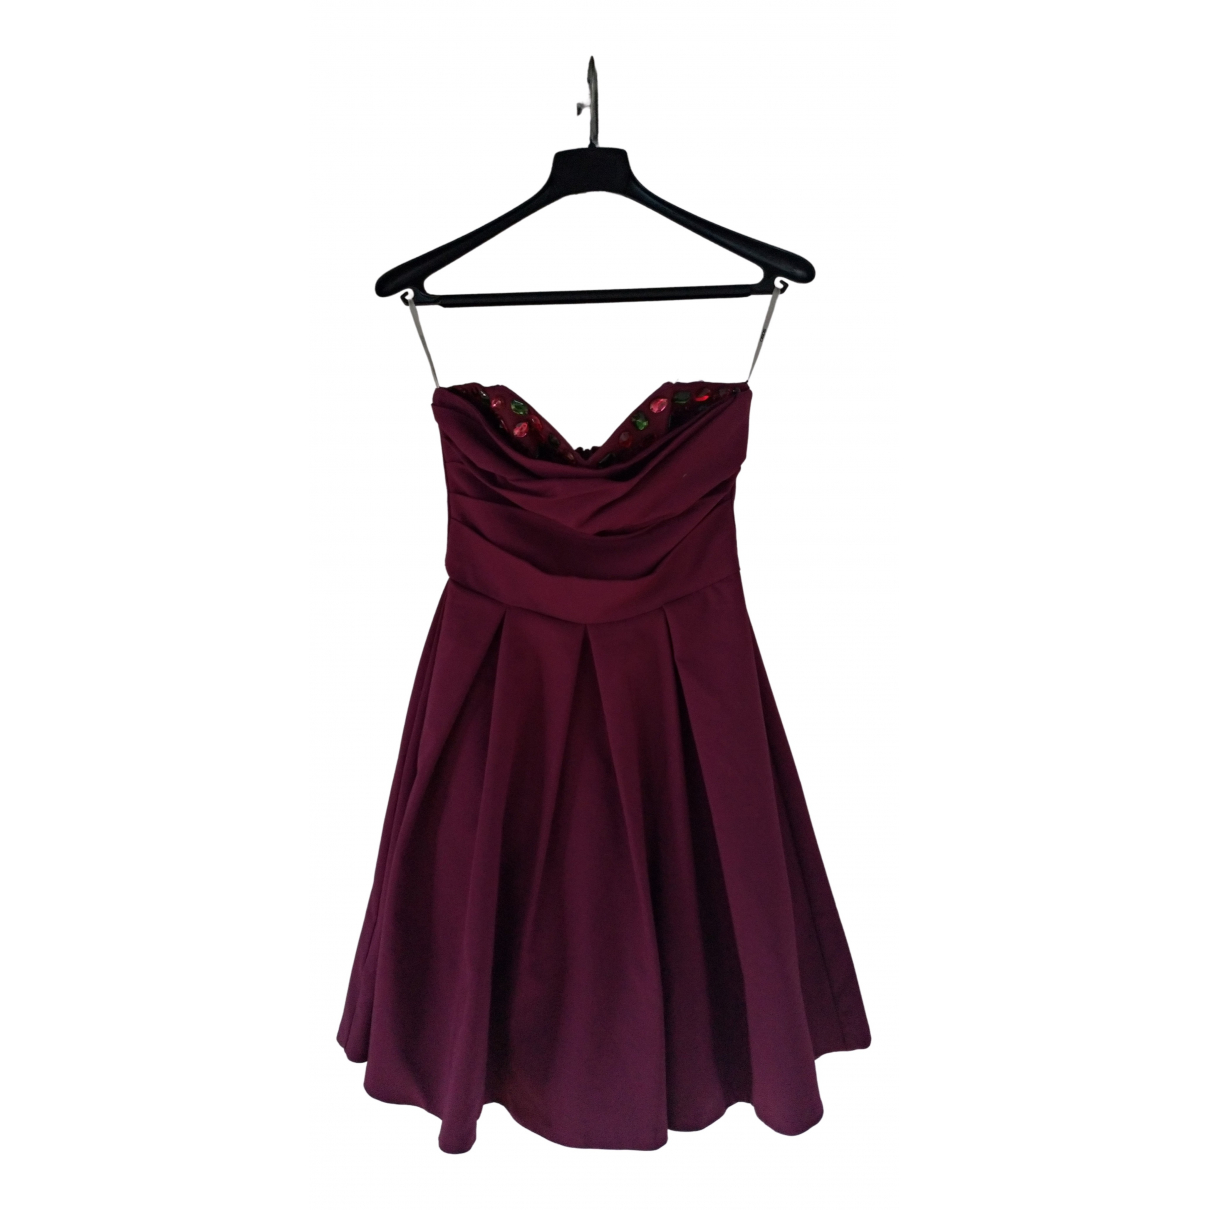 Asos \N Purple Cotton dress for Women 38 IT